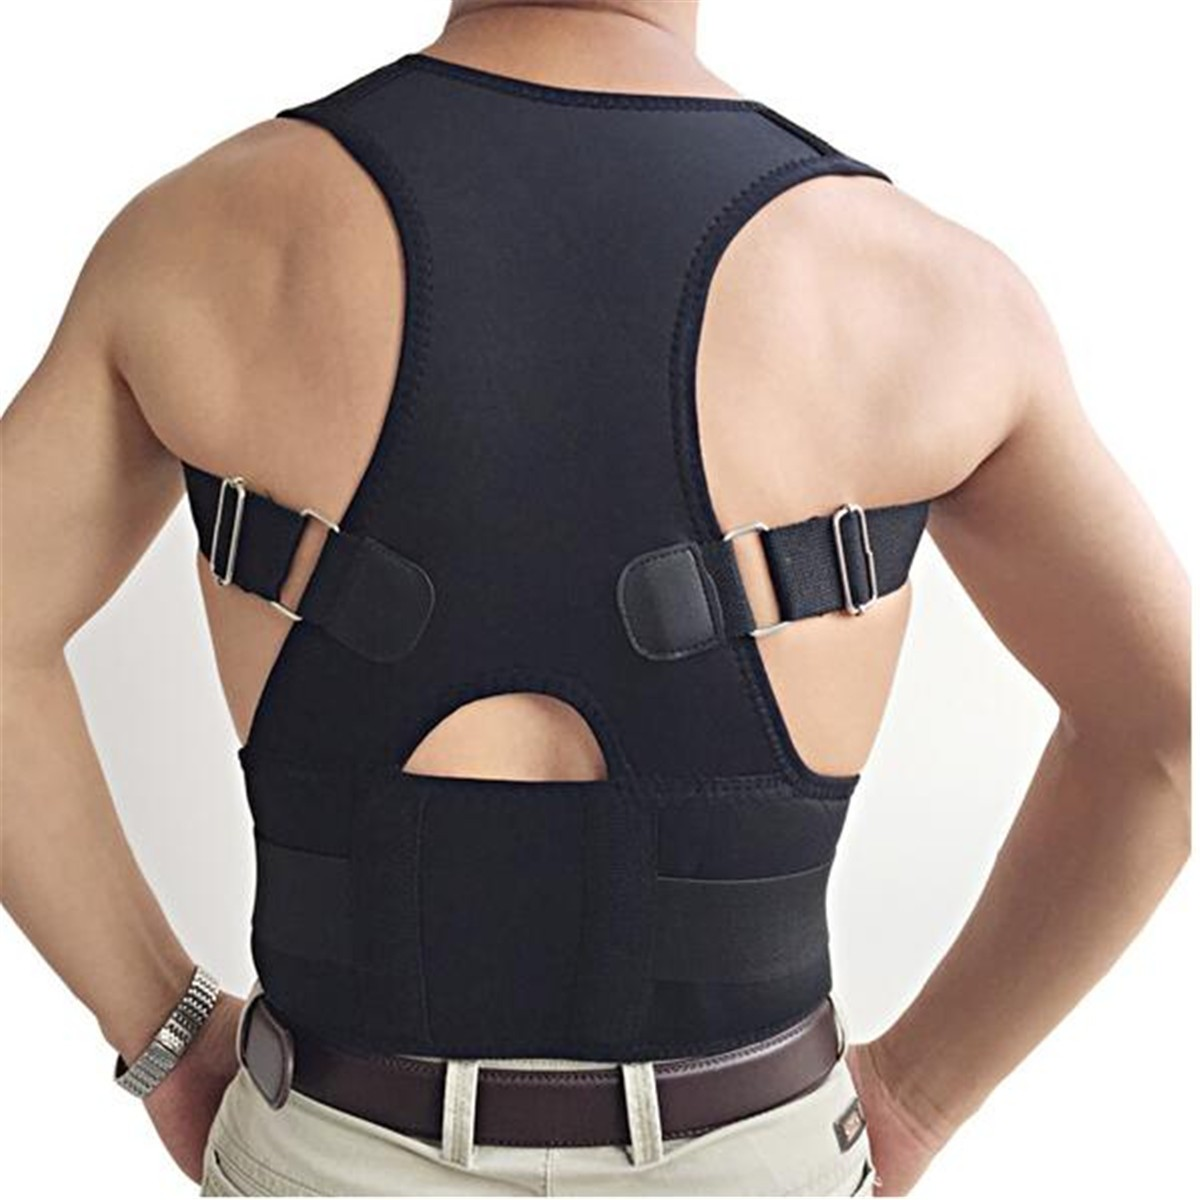 Adjustable Back Support Posture Corrector Brace Should